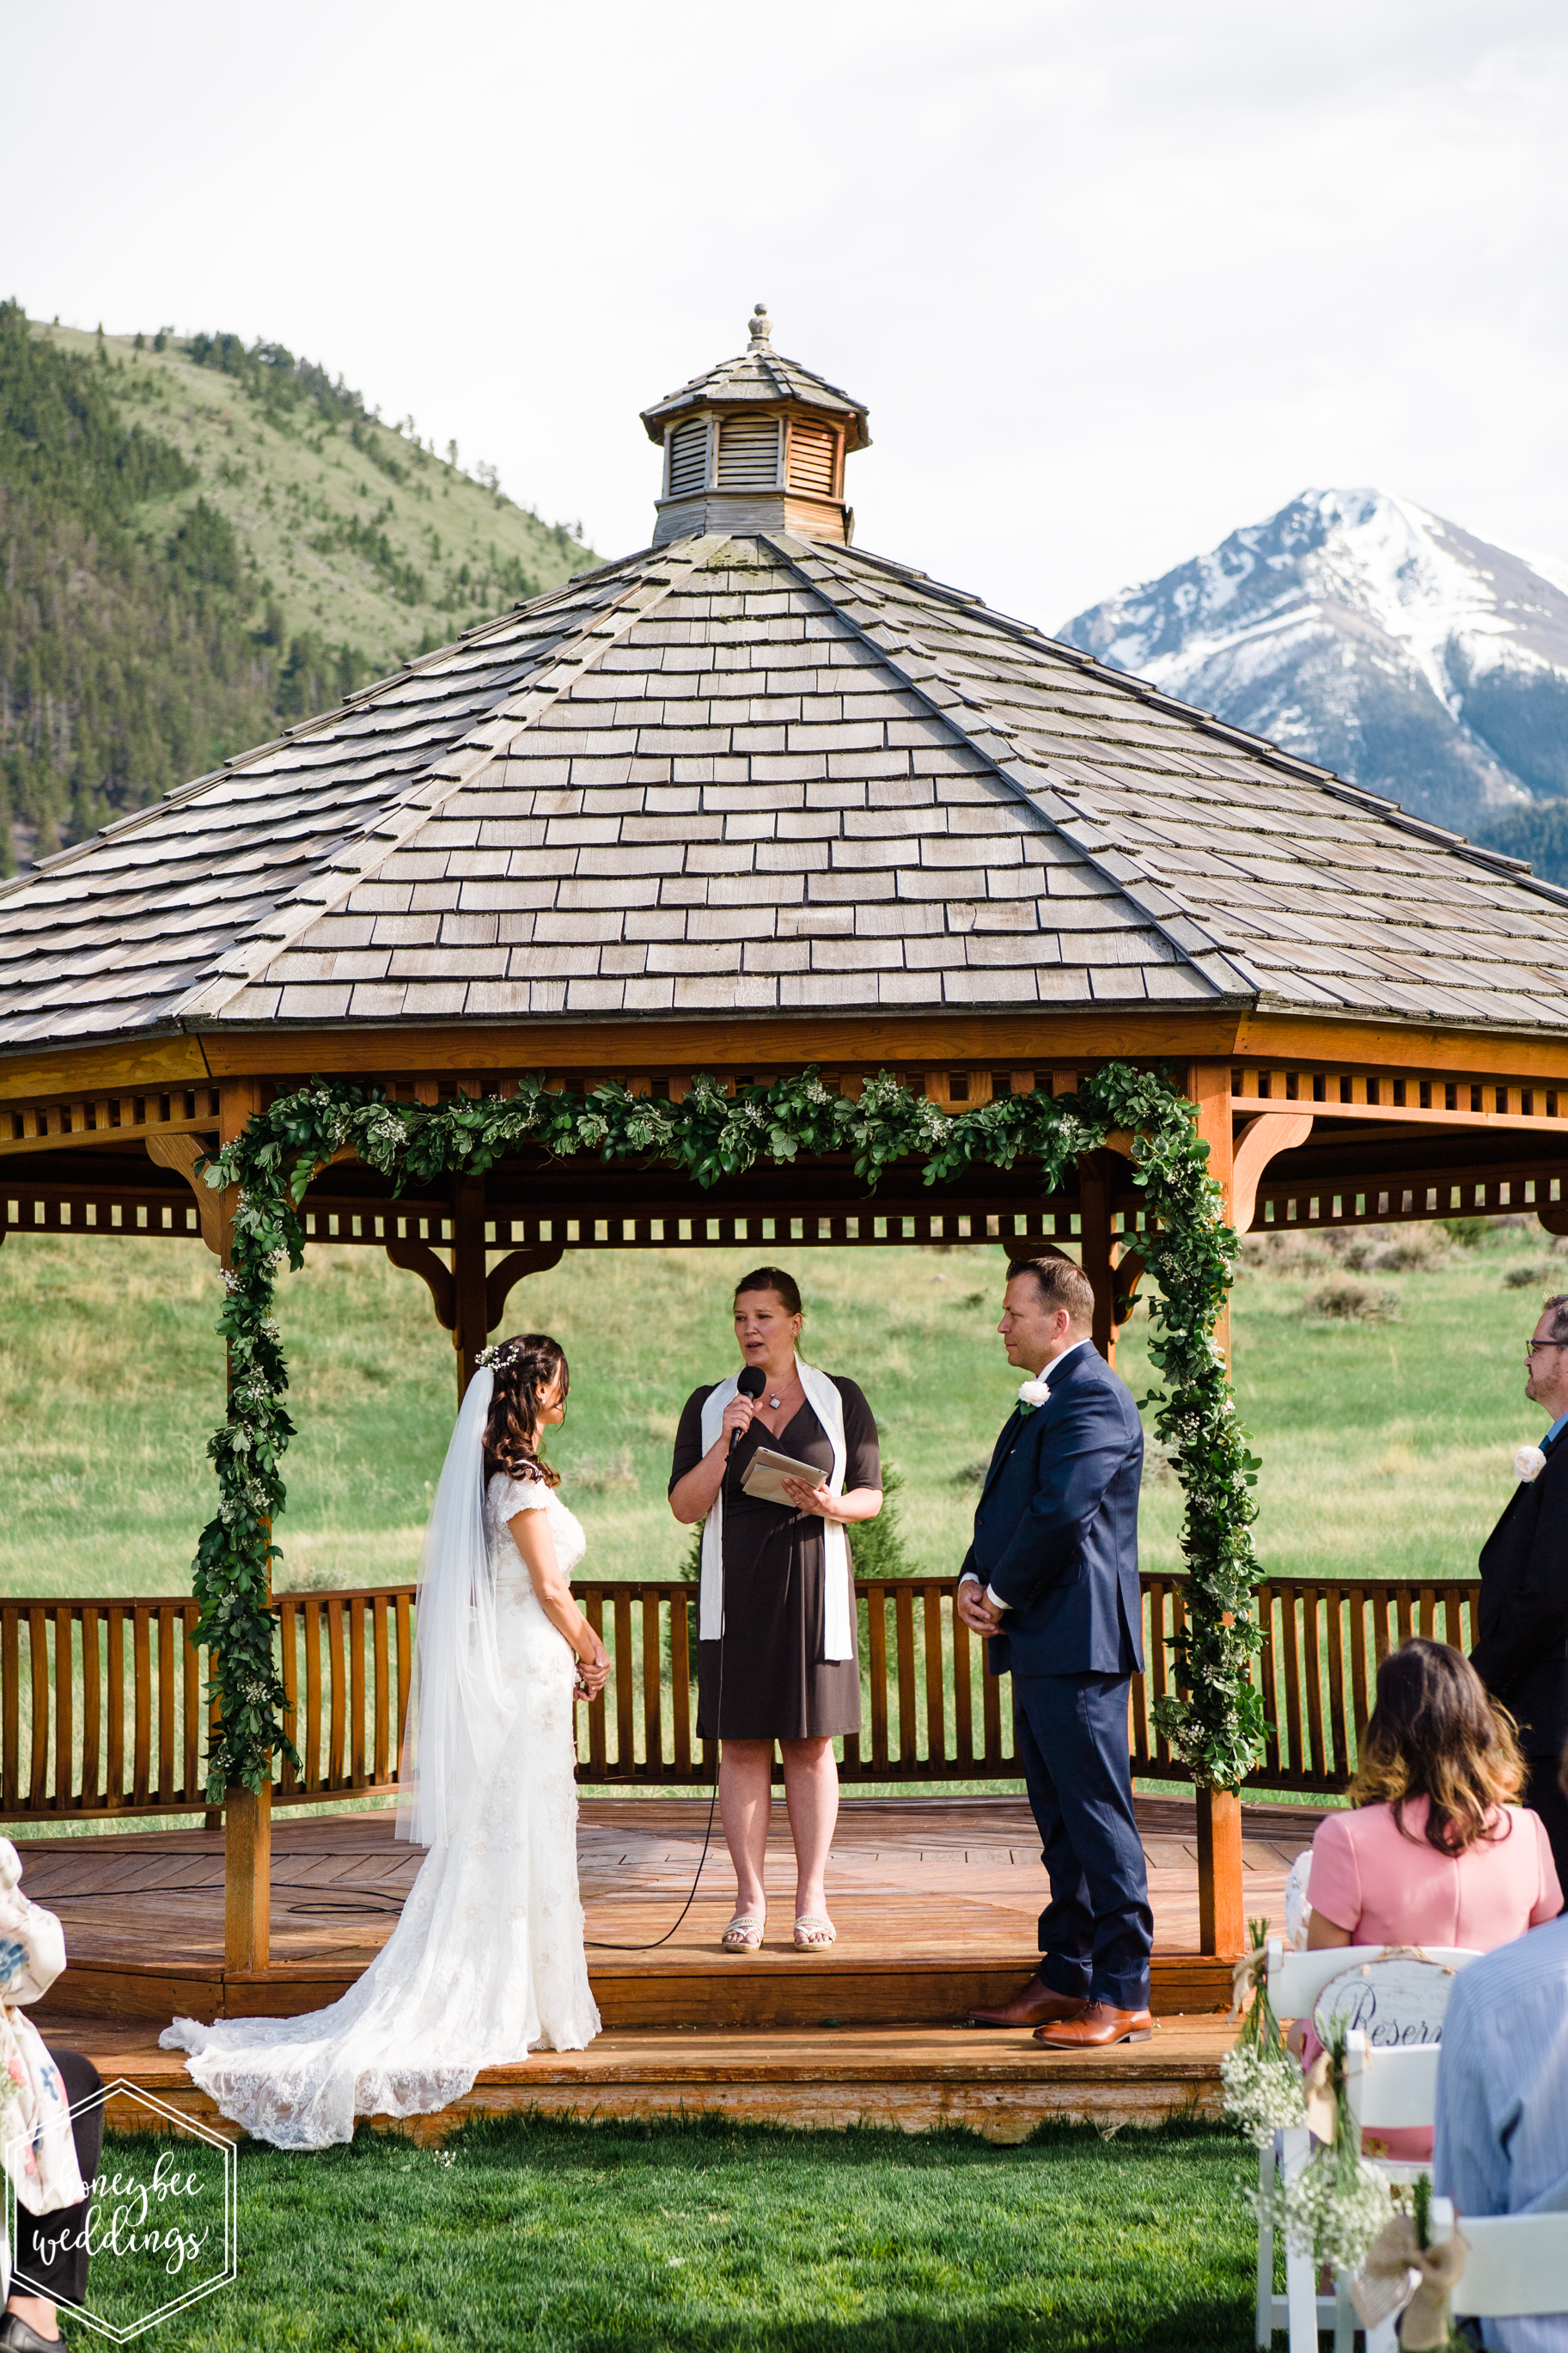 007Montana wedding photographer videographer_Chico hot springs wedding_Honeybee Weddings_Claudia & Bill_June 03, 2019-125.jpg